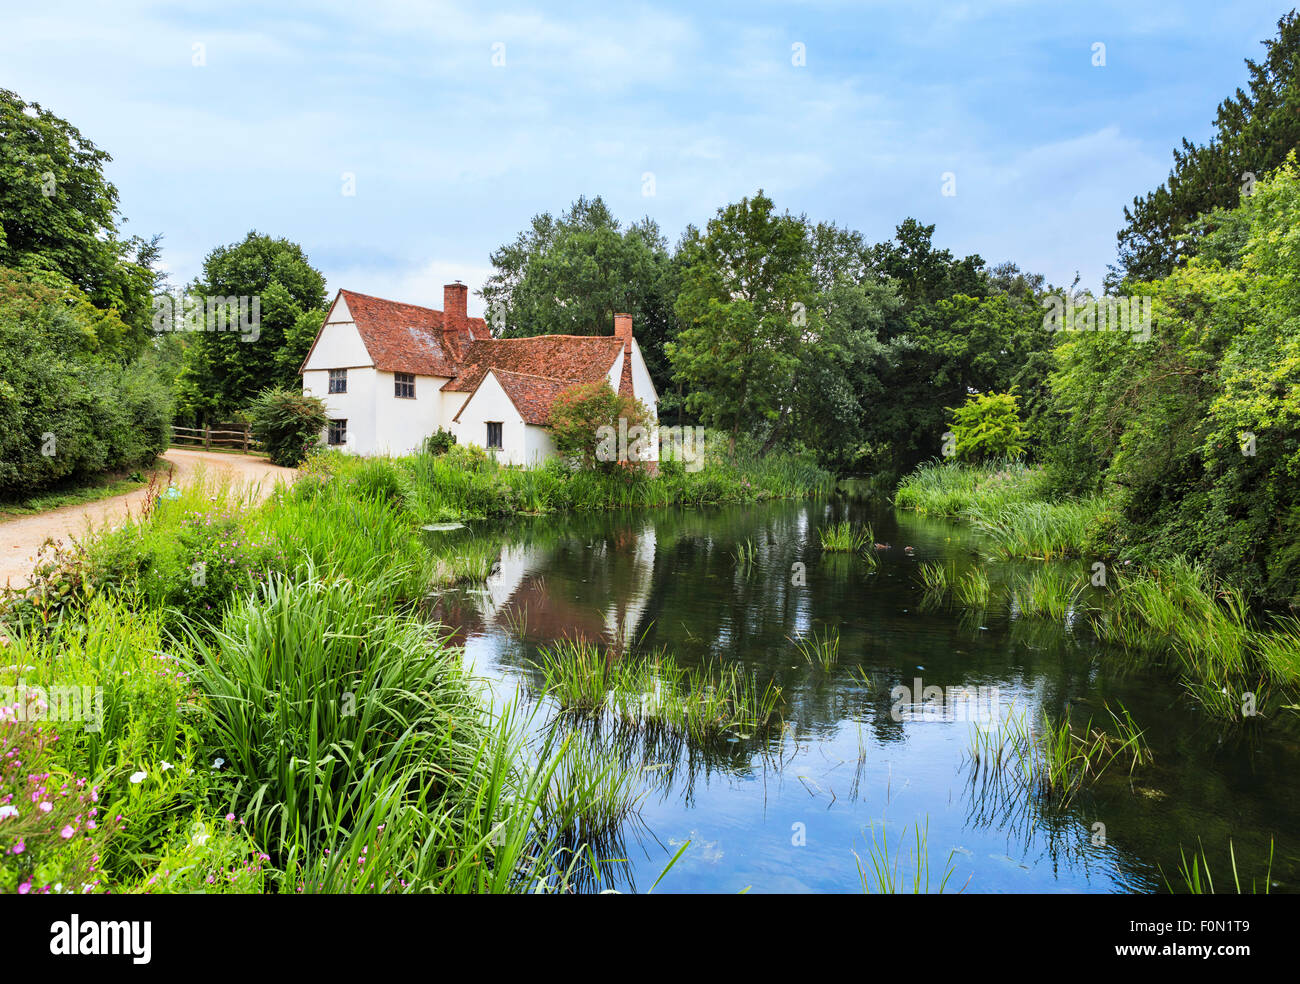 Willy Lott's Cottage at Flatford Mill, featured in Constable's painting 'The Hay Wain', East Bergholt, Dedham - Stock Image